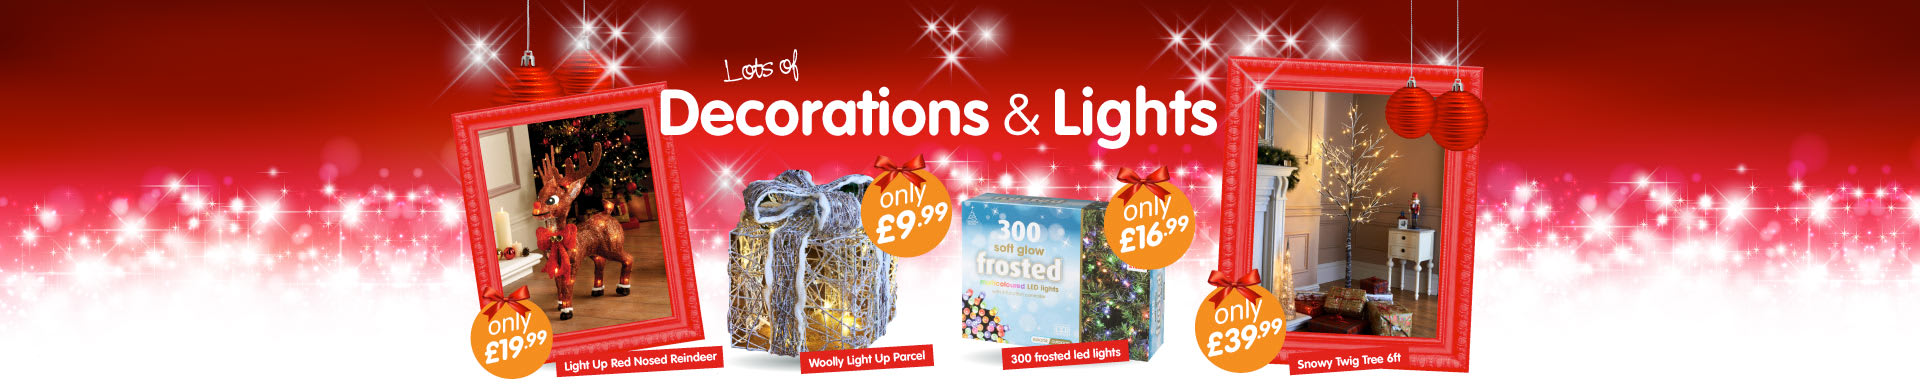 Large selection of Christmas Decorations and Lights at B&M Stores.